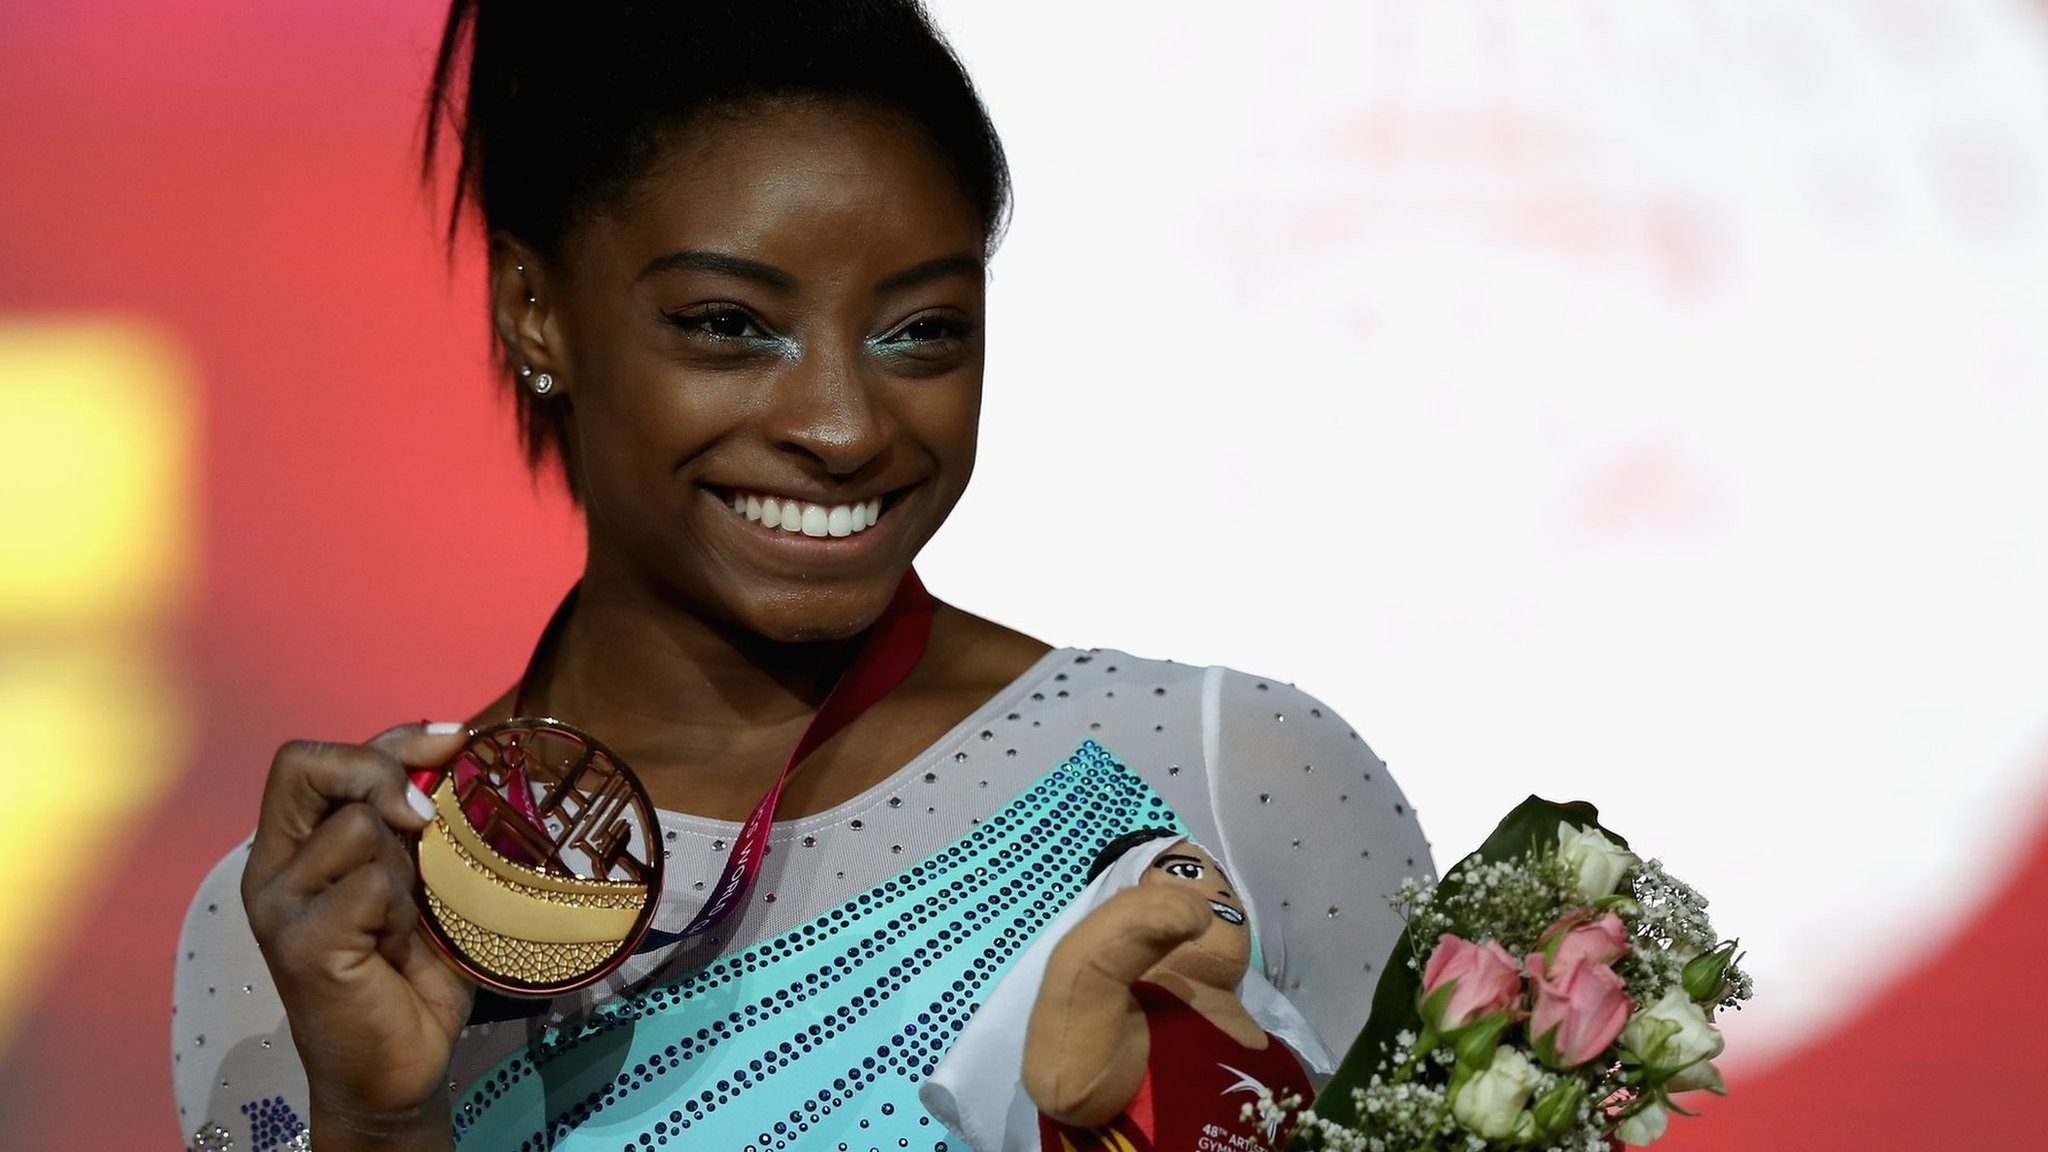 Biles expects 2020 to be her last Olympics